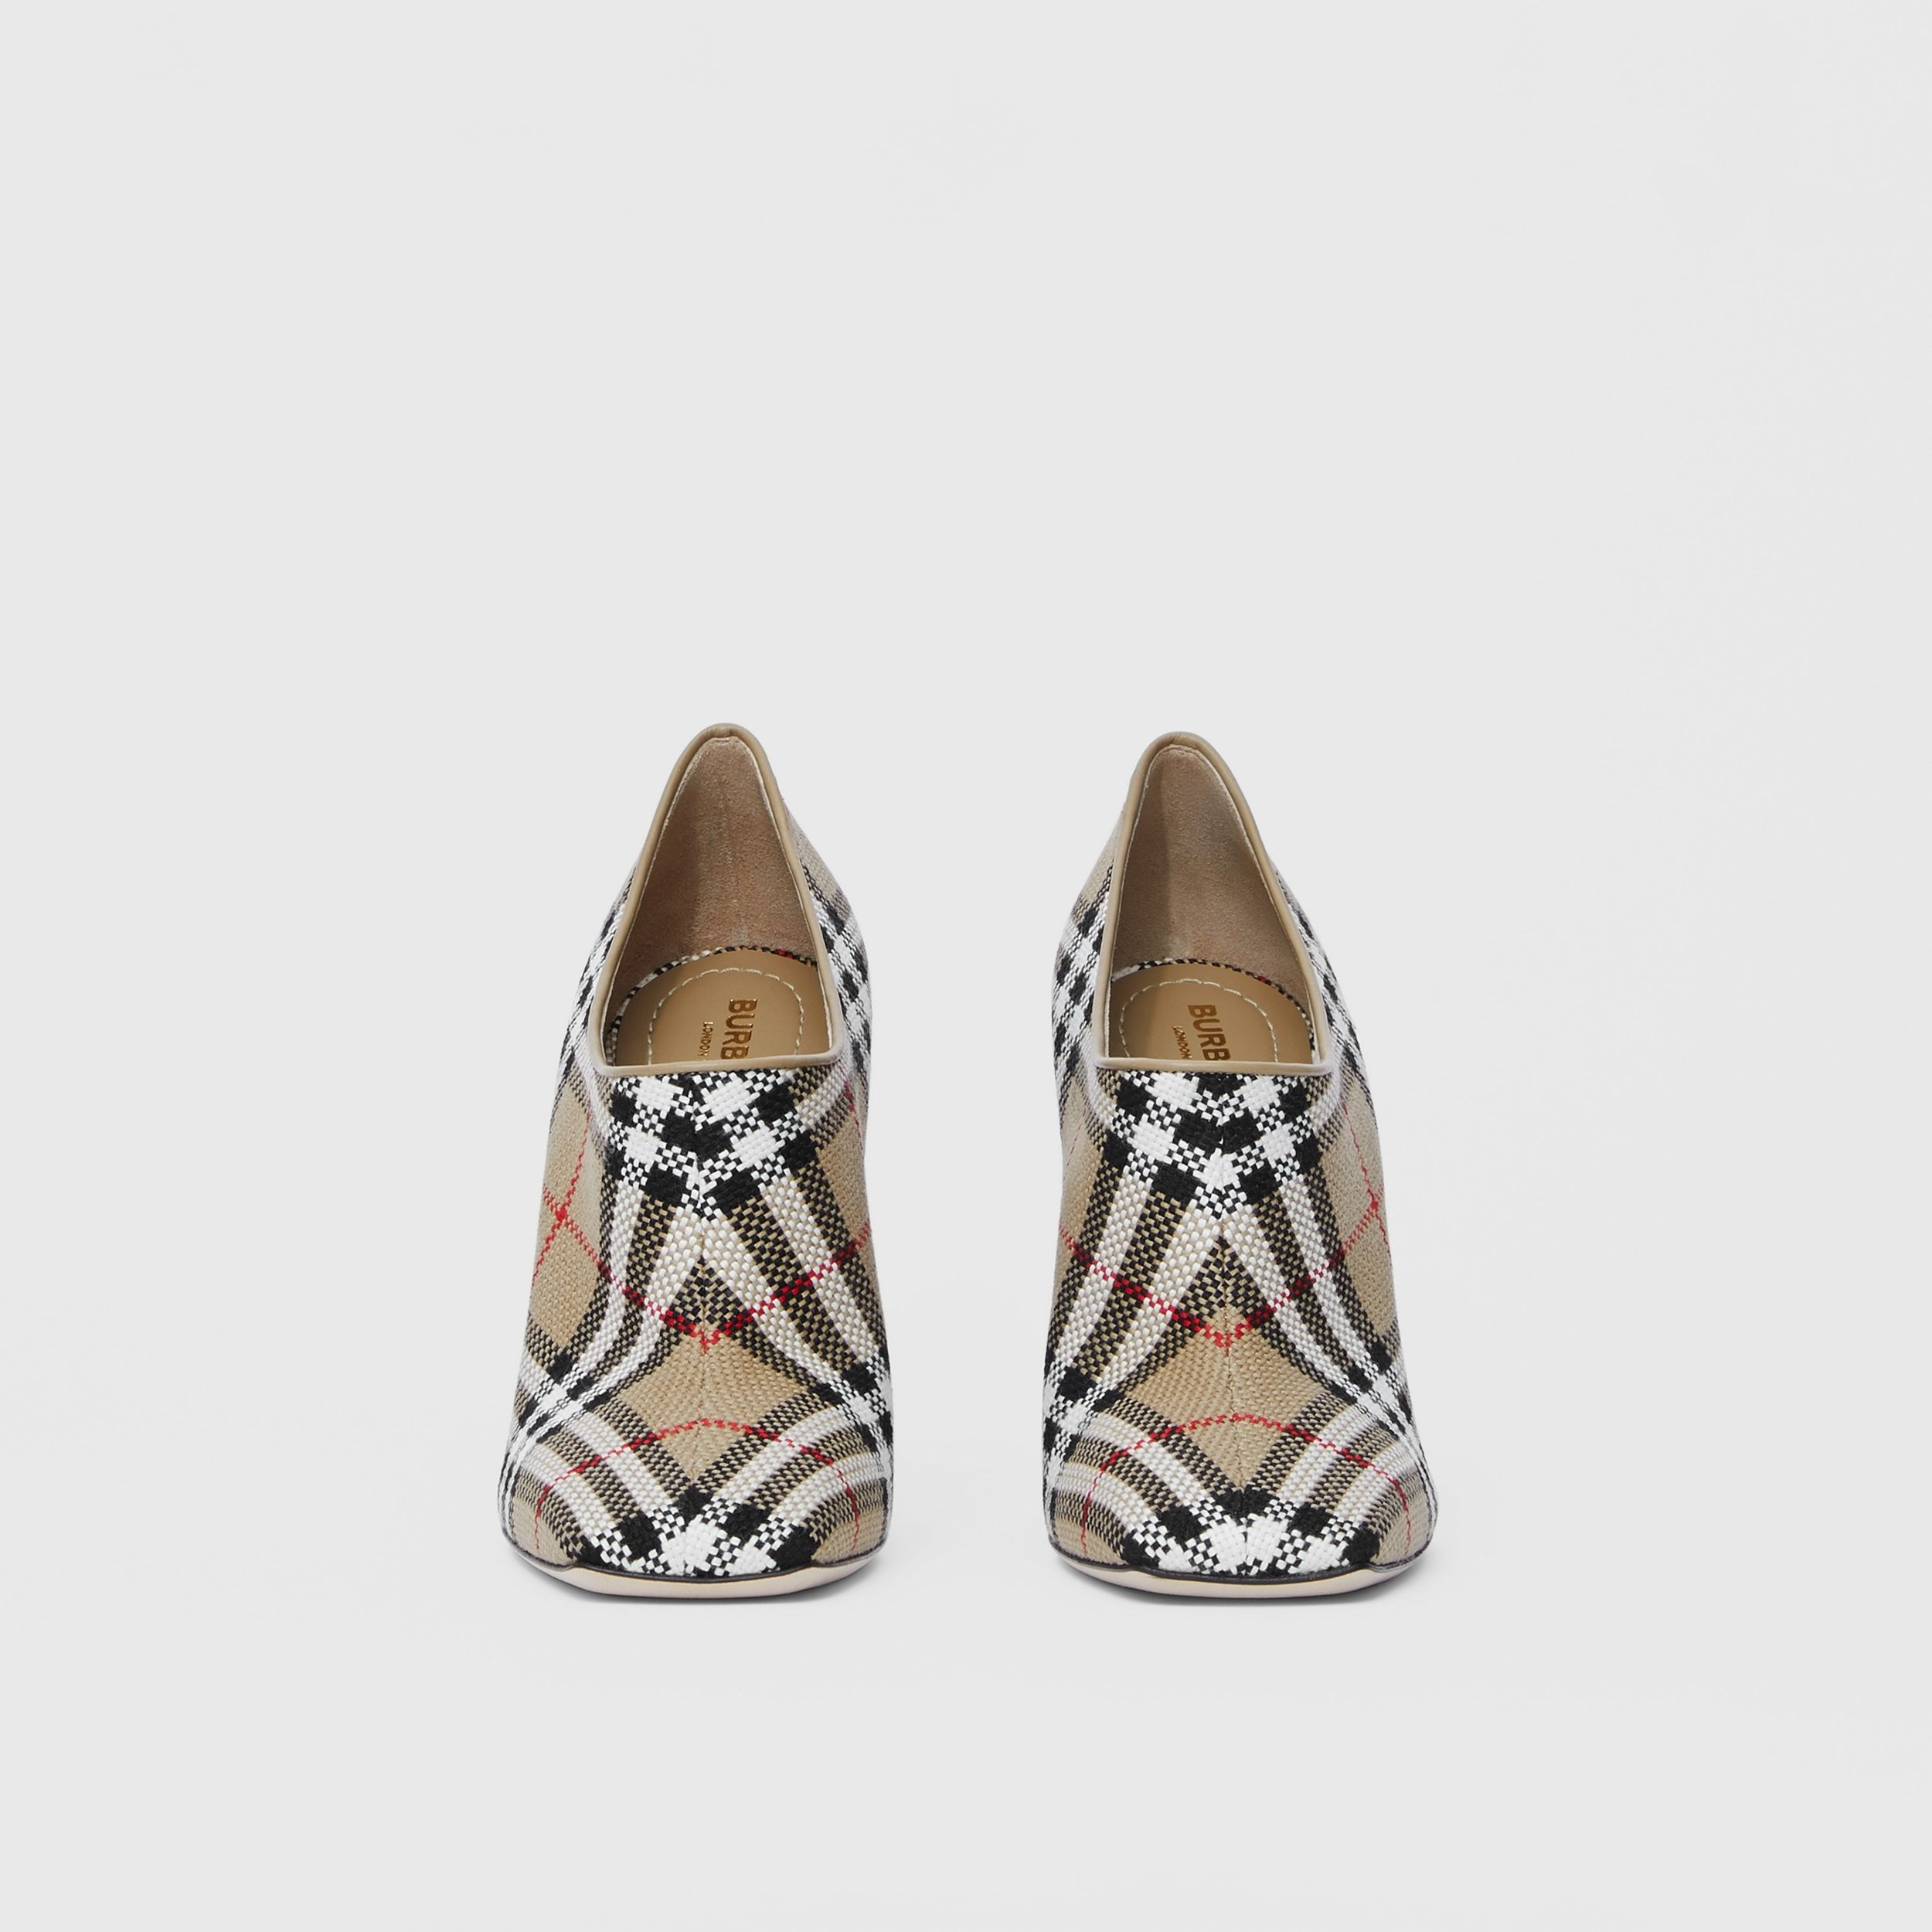 Latticed Cotton Square-toe Pumps in Archive Beige - Women | Burberry - 3